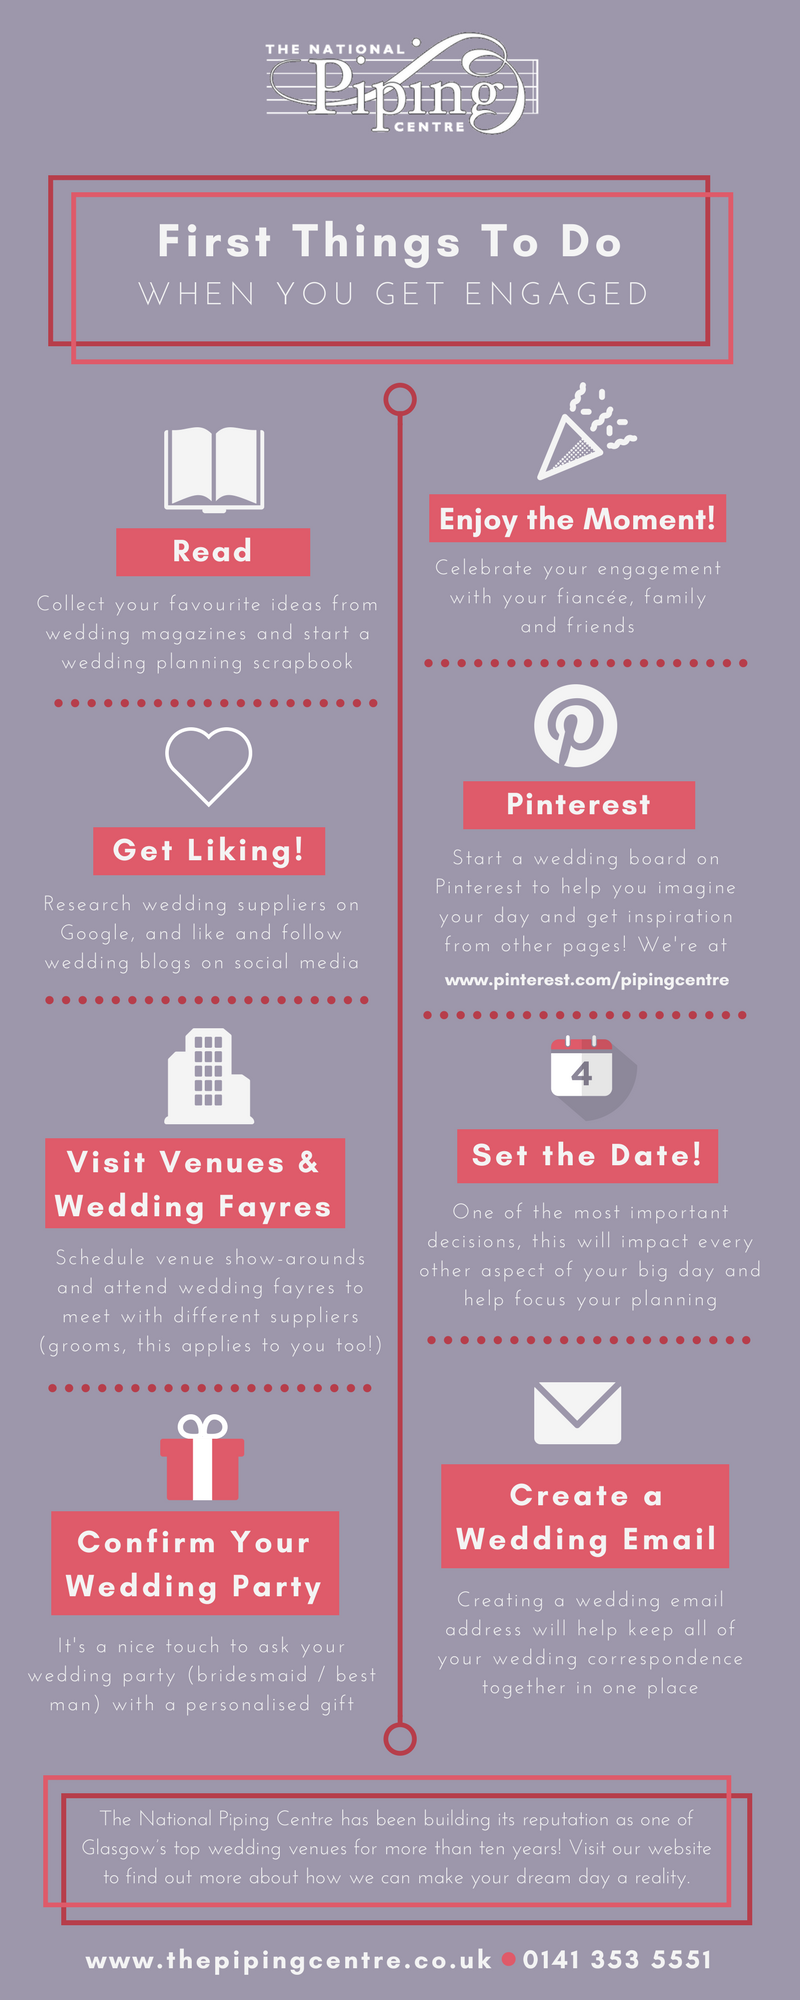 First Things To Do When You Get Engaged - The National Piping Centre